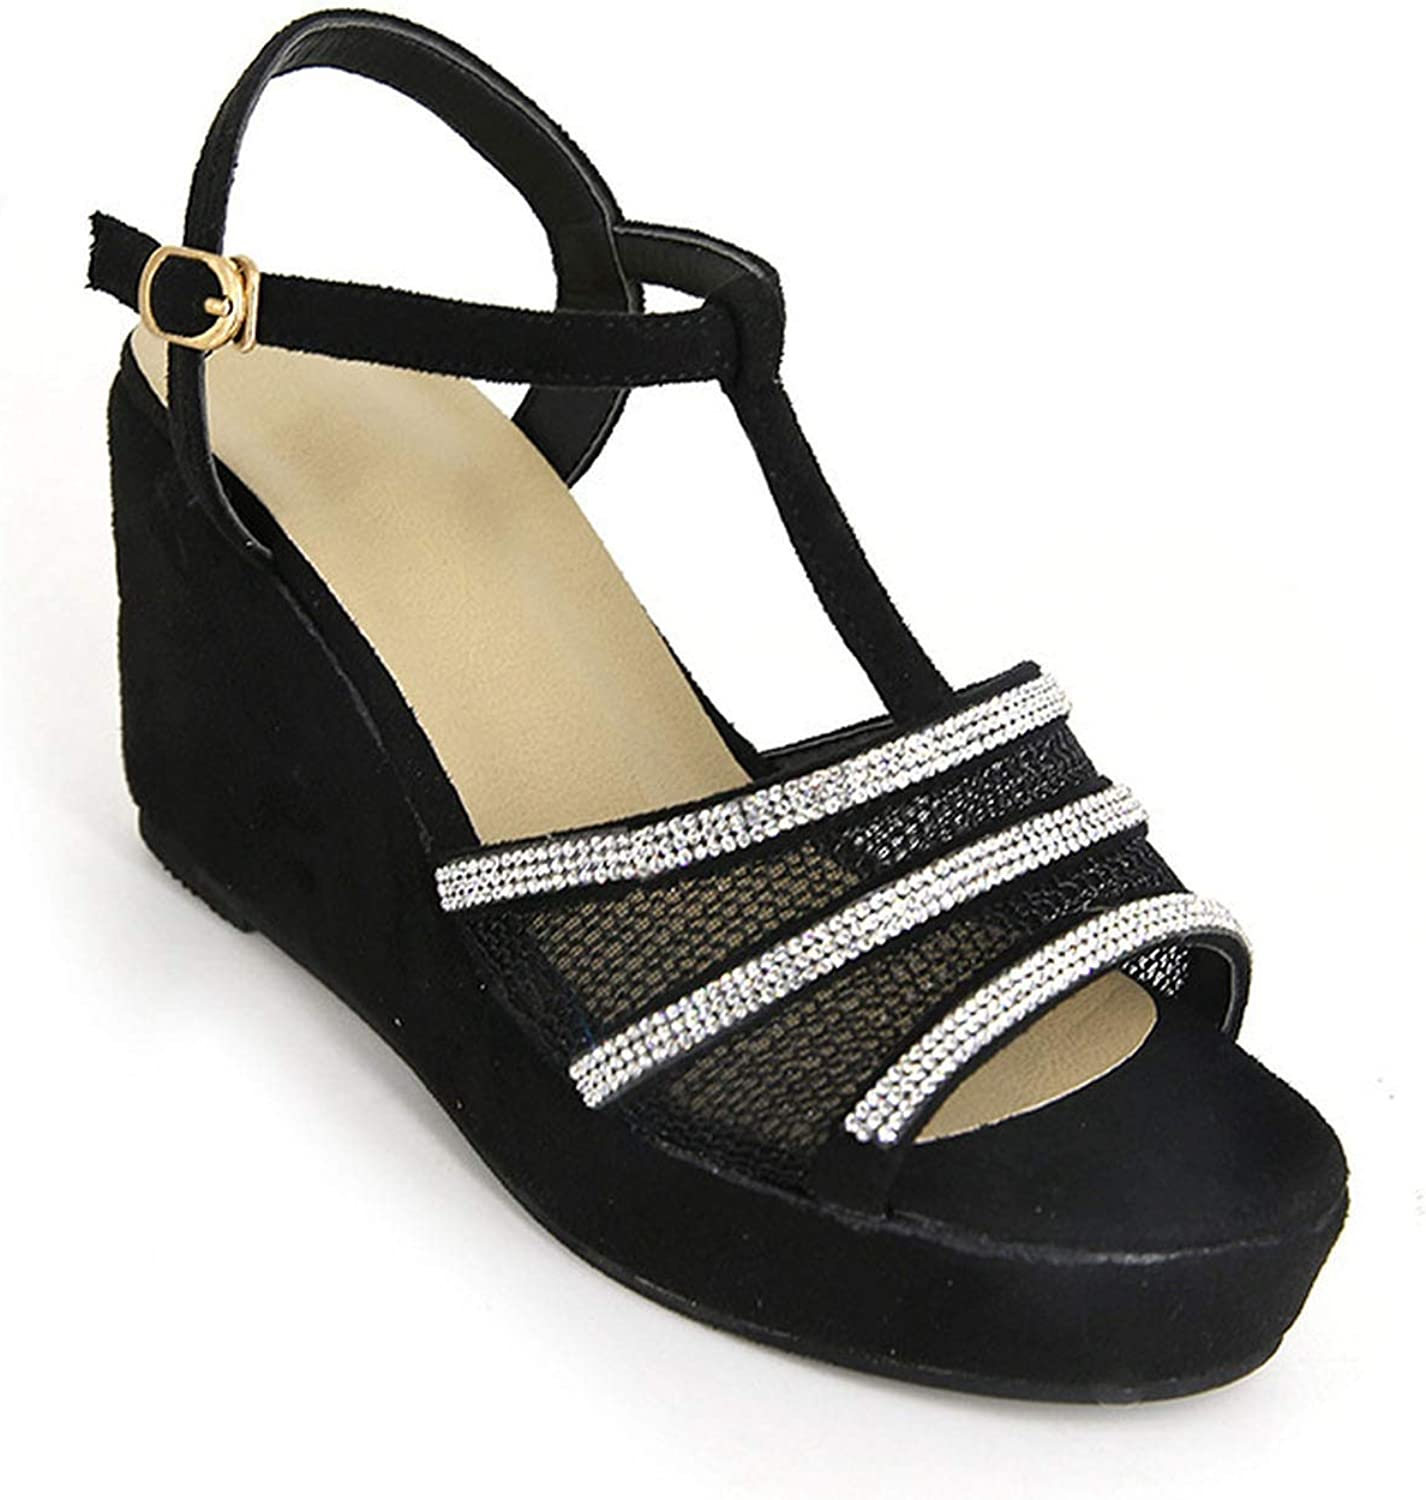 Pink-star Sandals Wedge Heeled Roman shoes Thick-Soled Large Size Women's Sandals